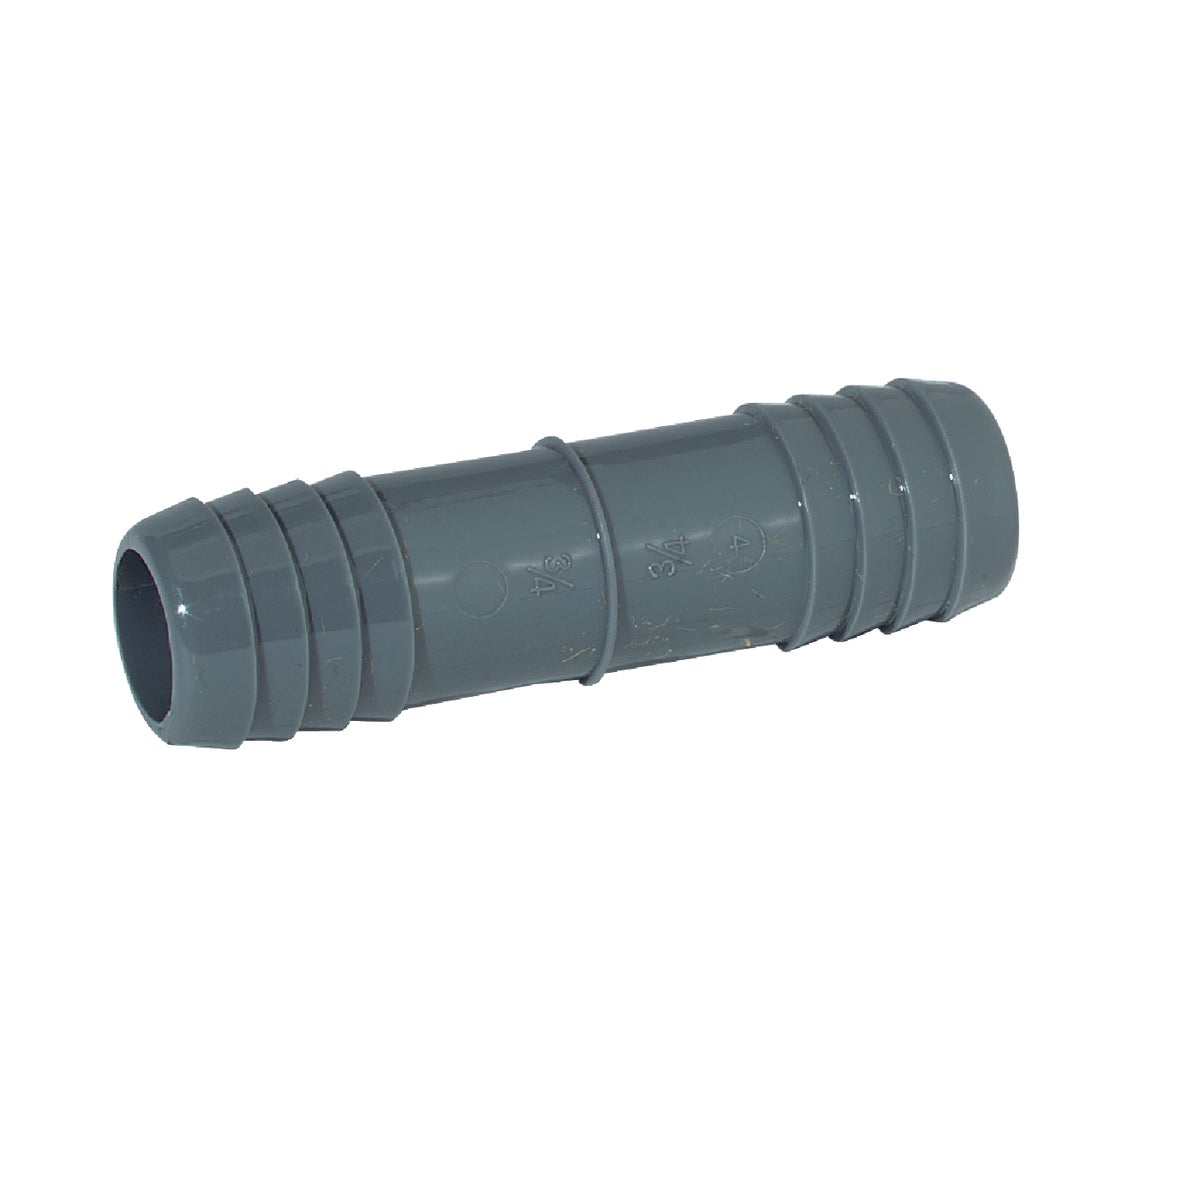 "3/4""POLY INSERT COUPLING - 350107 by Genova Inc"